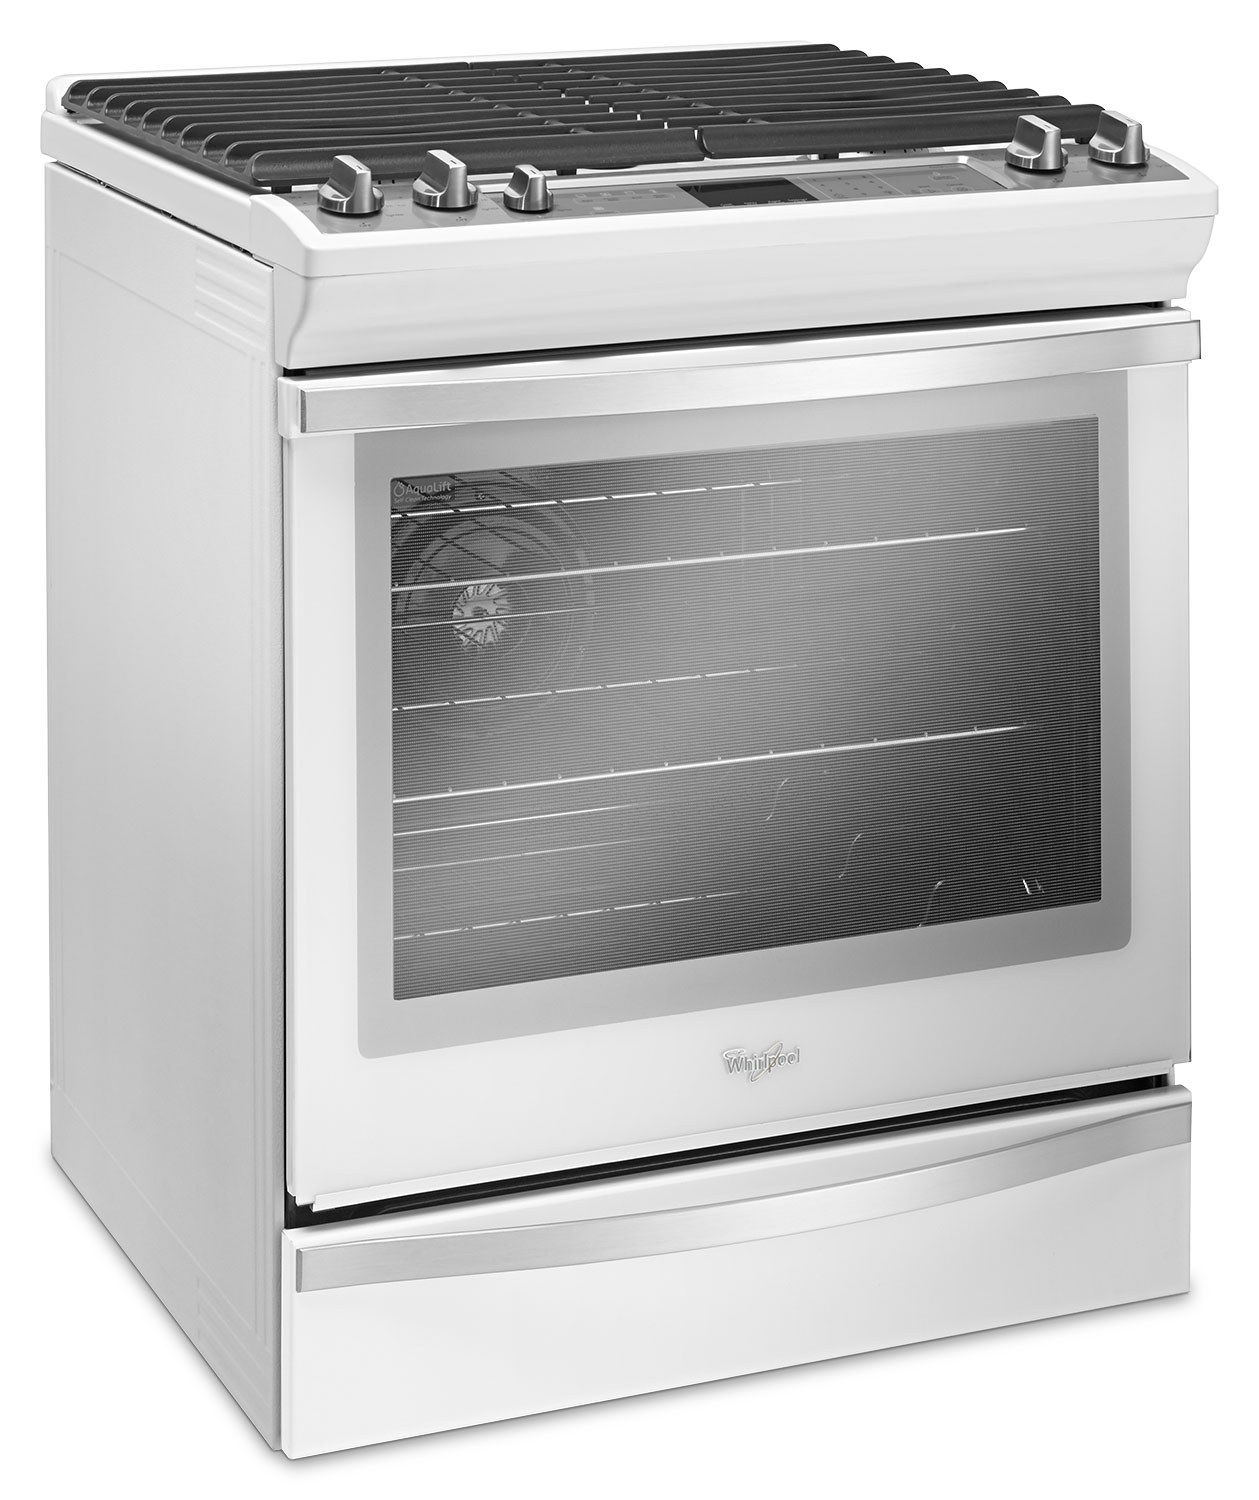 Whirlpool White Slide-In Gas Range (5.8 Cu. Ft ...